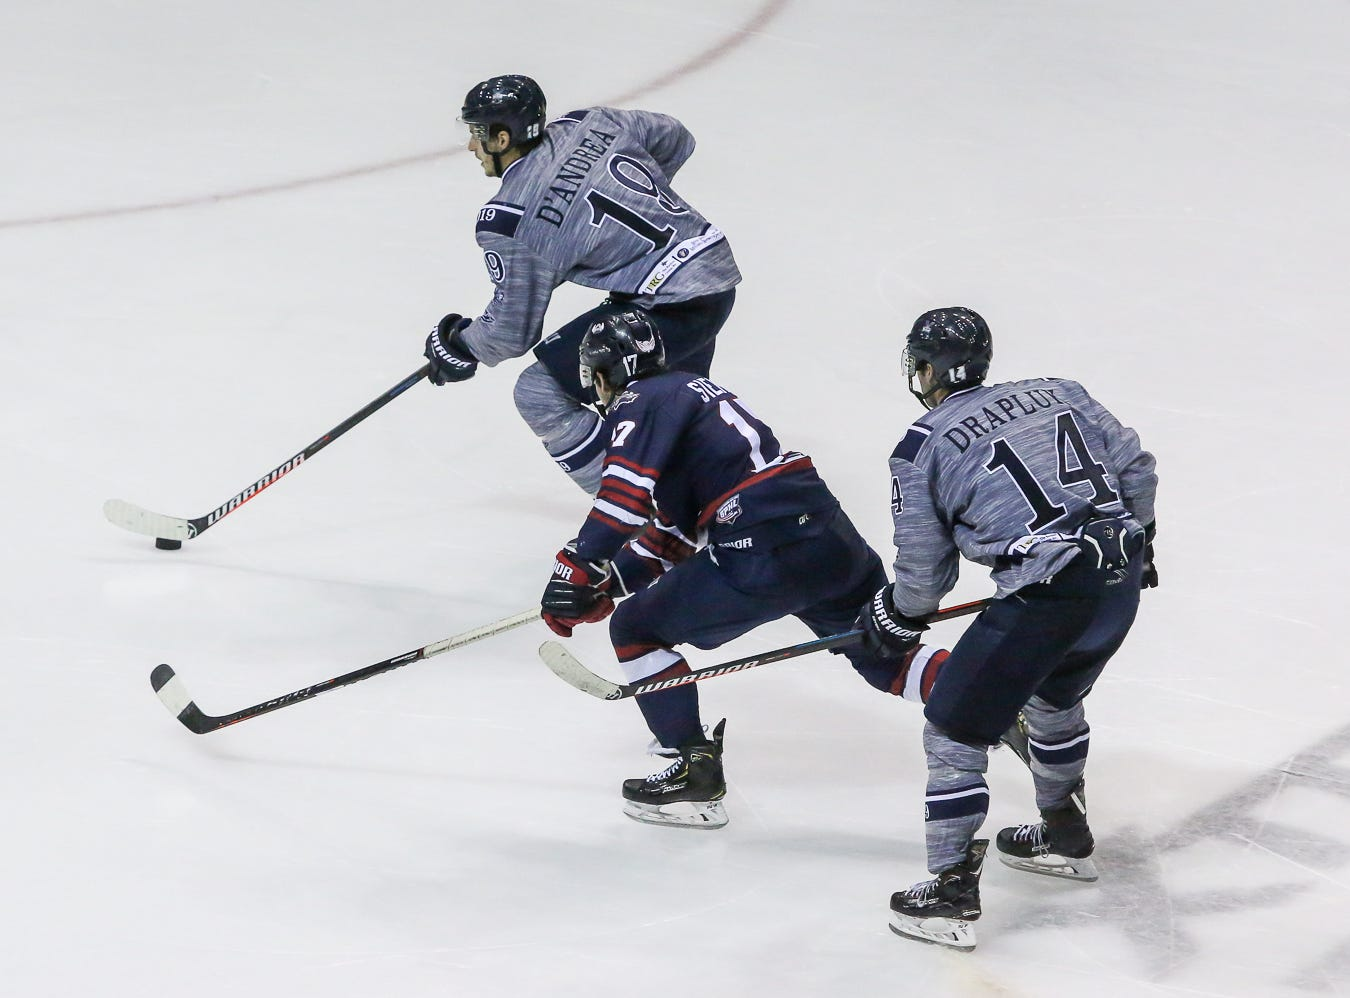 Pensacola's Brett D'Andrea (19) breaks away from Macon's John Siemer (17) and takes a shot during the last home game of the regular season at the Pensacola Bay Center on Saturday, March 23, 2019. With over 4,300 people in attendance for Pensacola's 3-1 victory, the Ice Flyers mark six straight years of over 100,000 people at their home games each season. The team has won their last five games in a row and will finish out their last five games on the road before entering the playoffs in a couple of weeks.